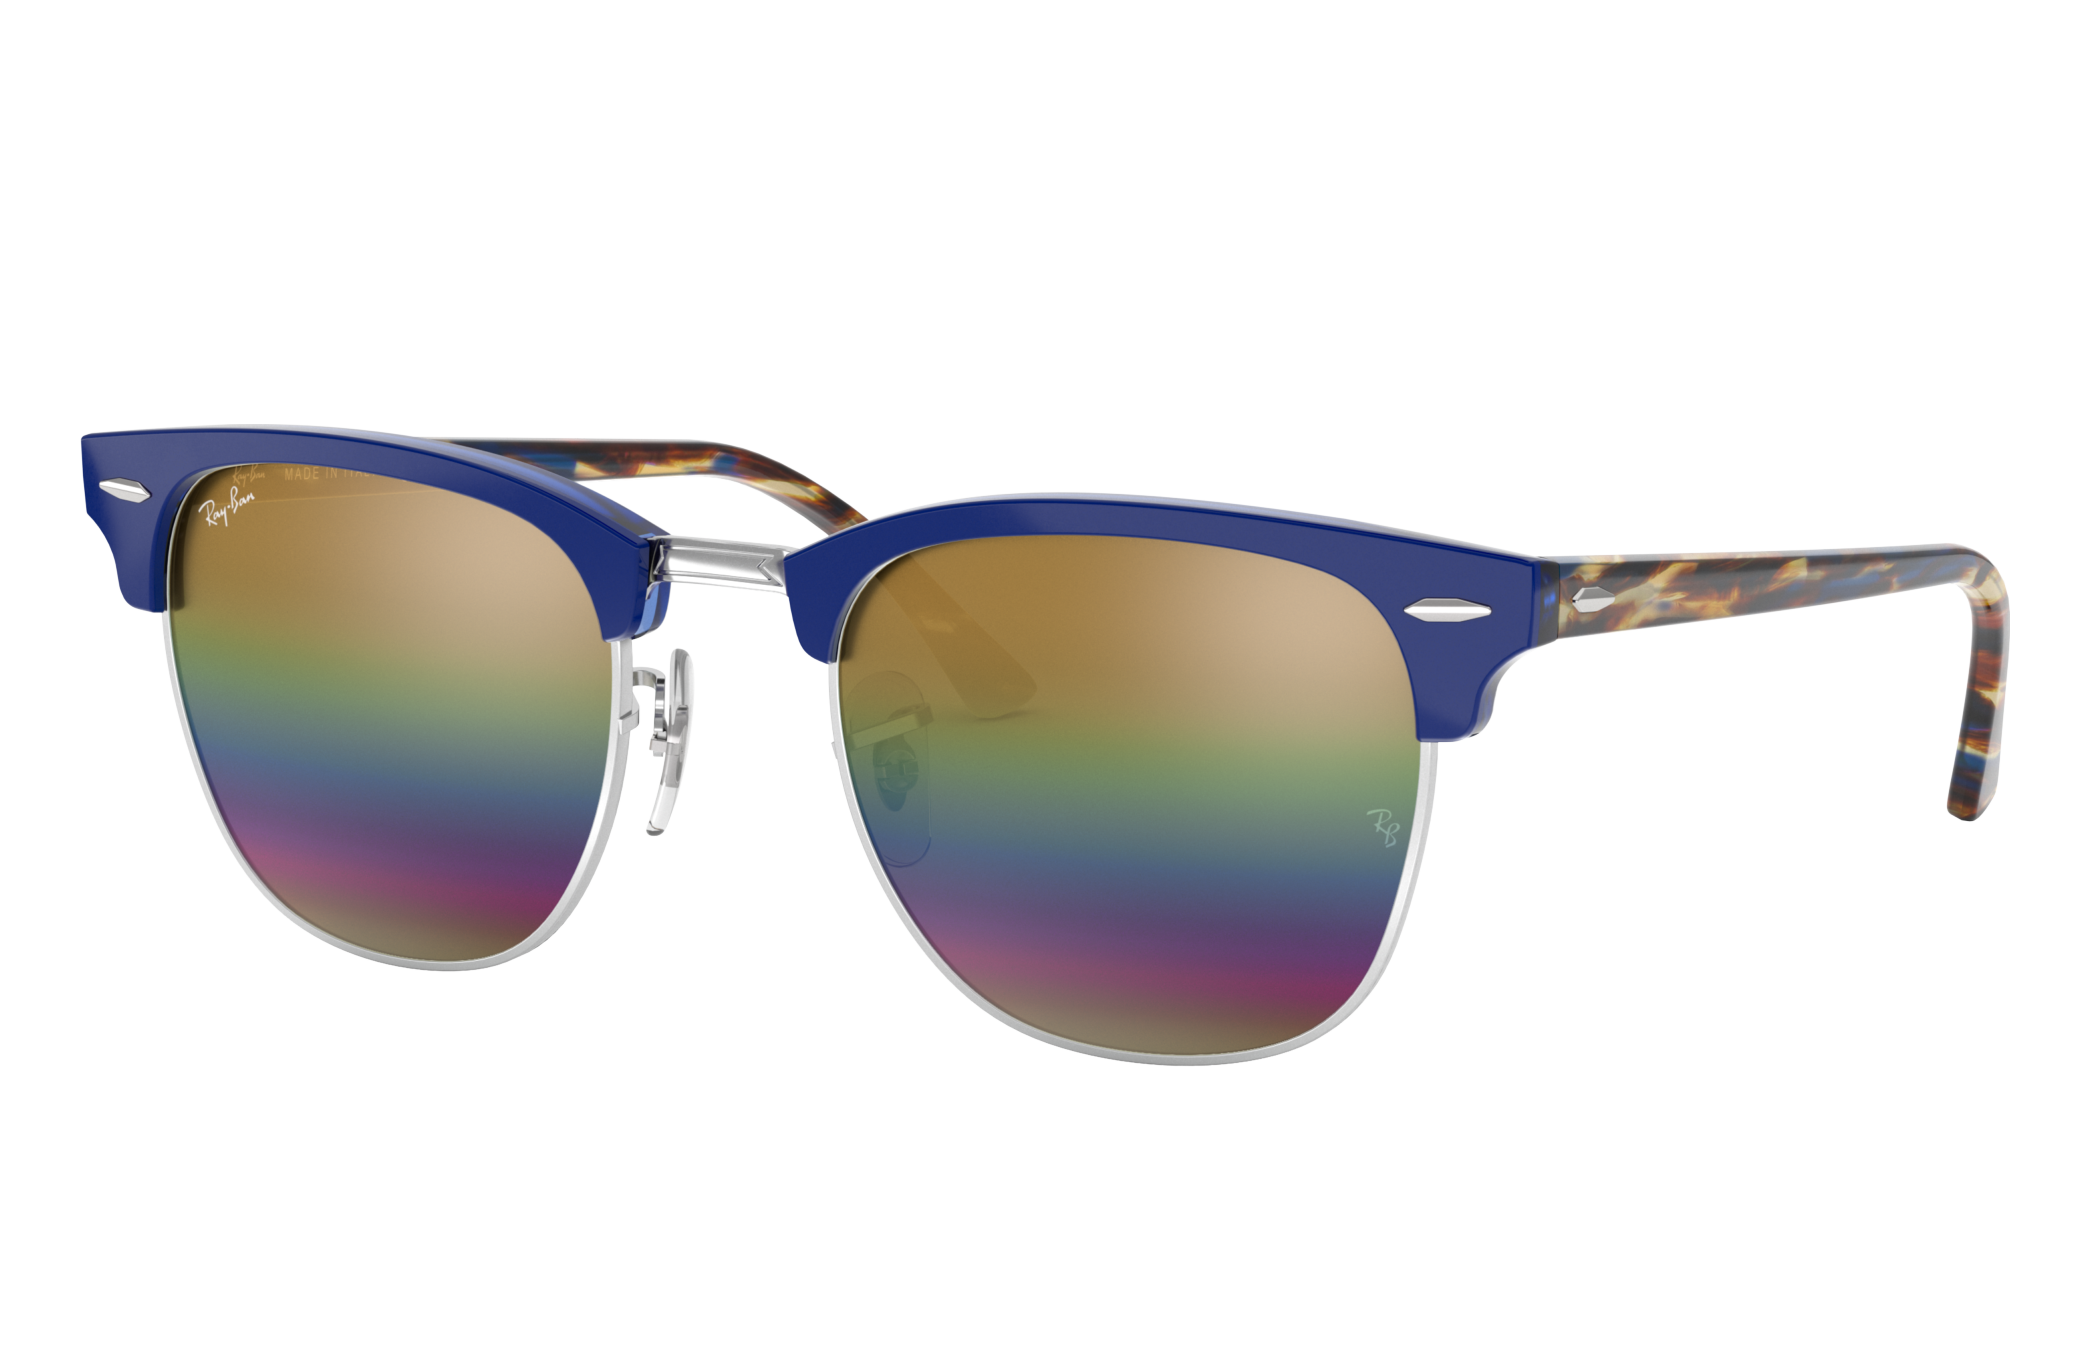 Ray-Ban Clubmaster Mineral Flash Lenses Blue, Yellow Lenses - RB3016